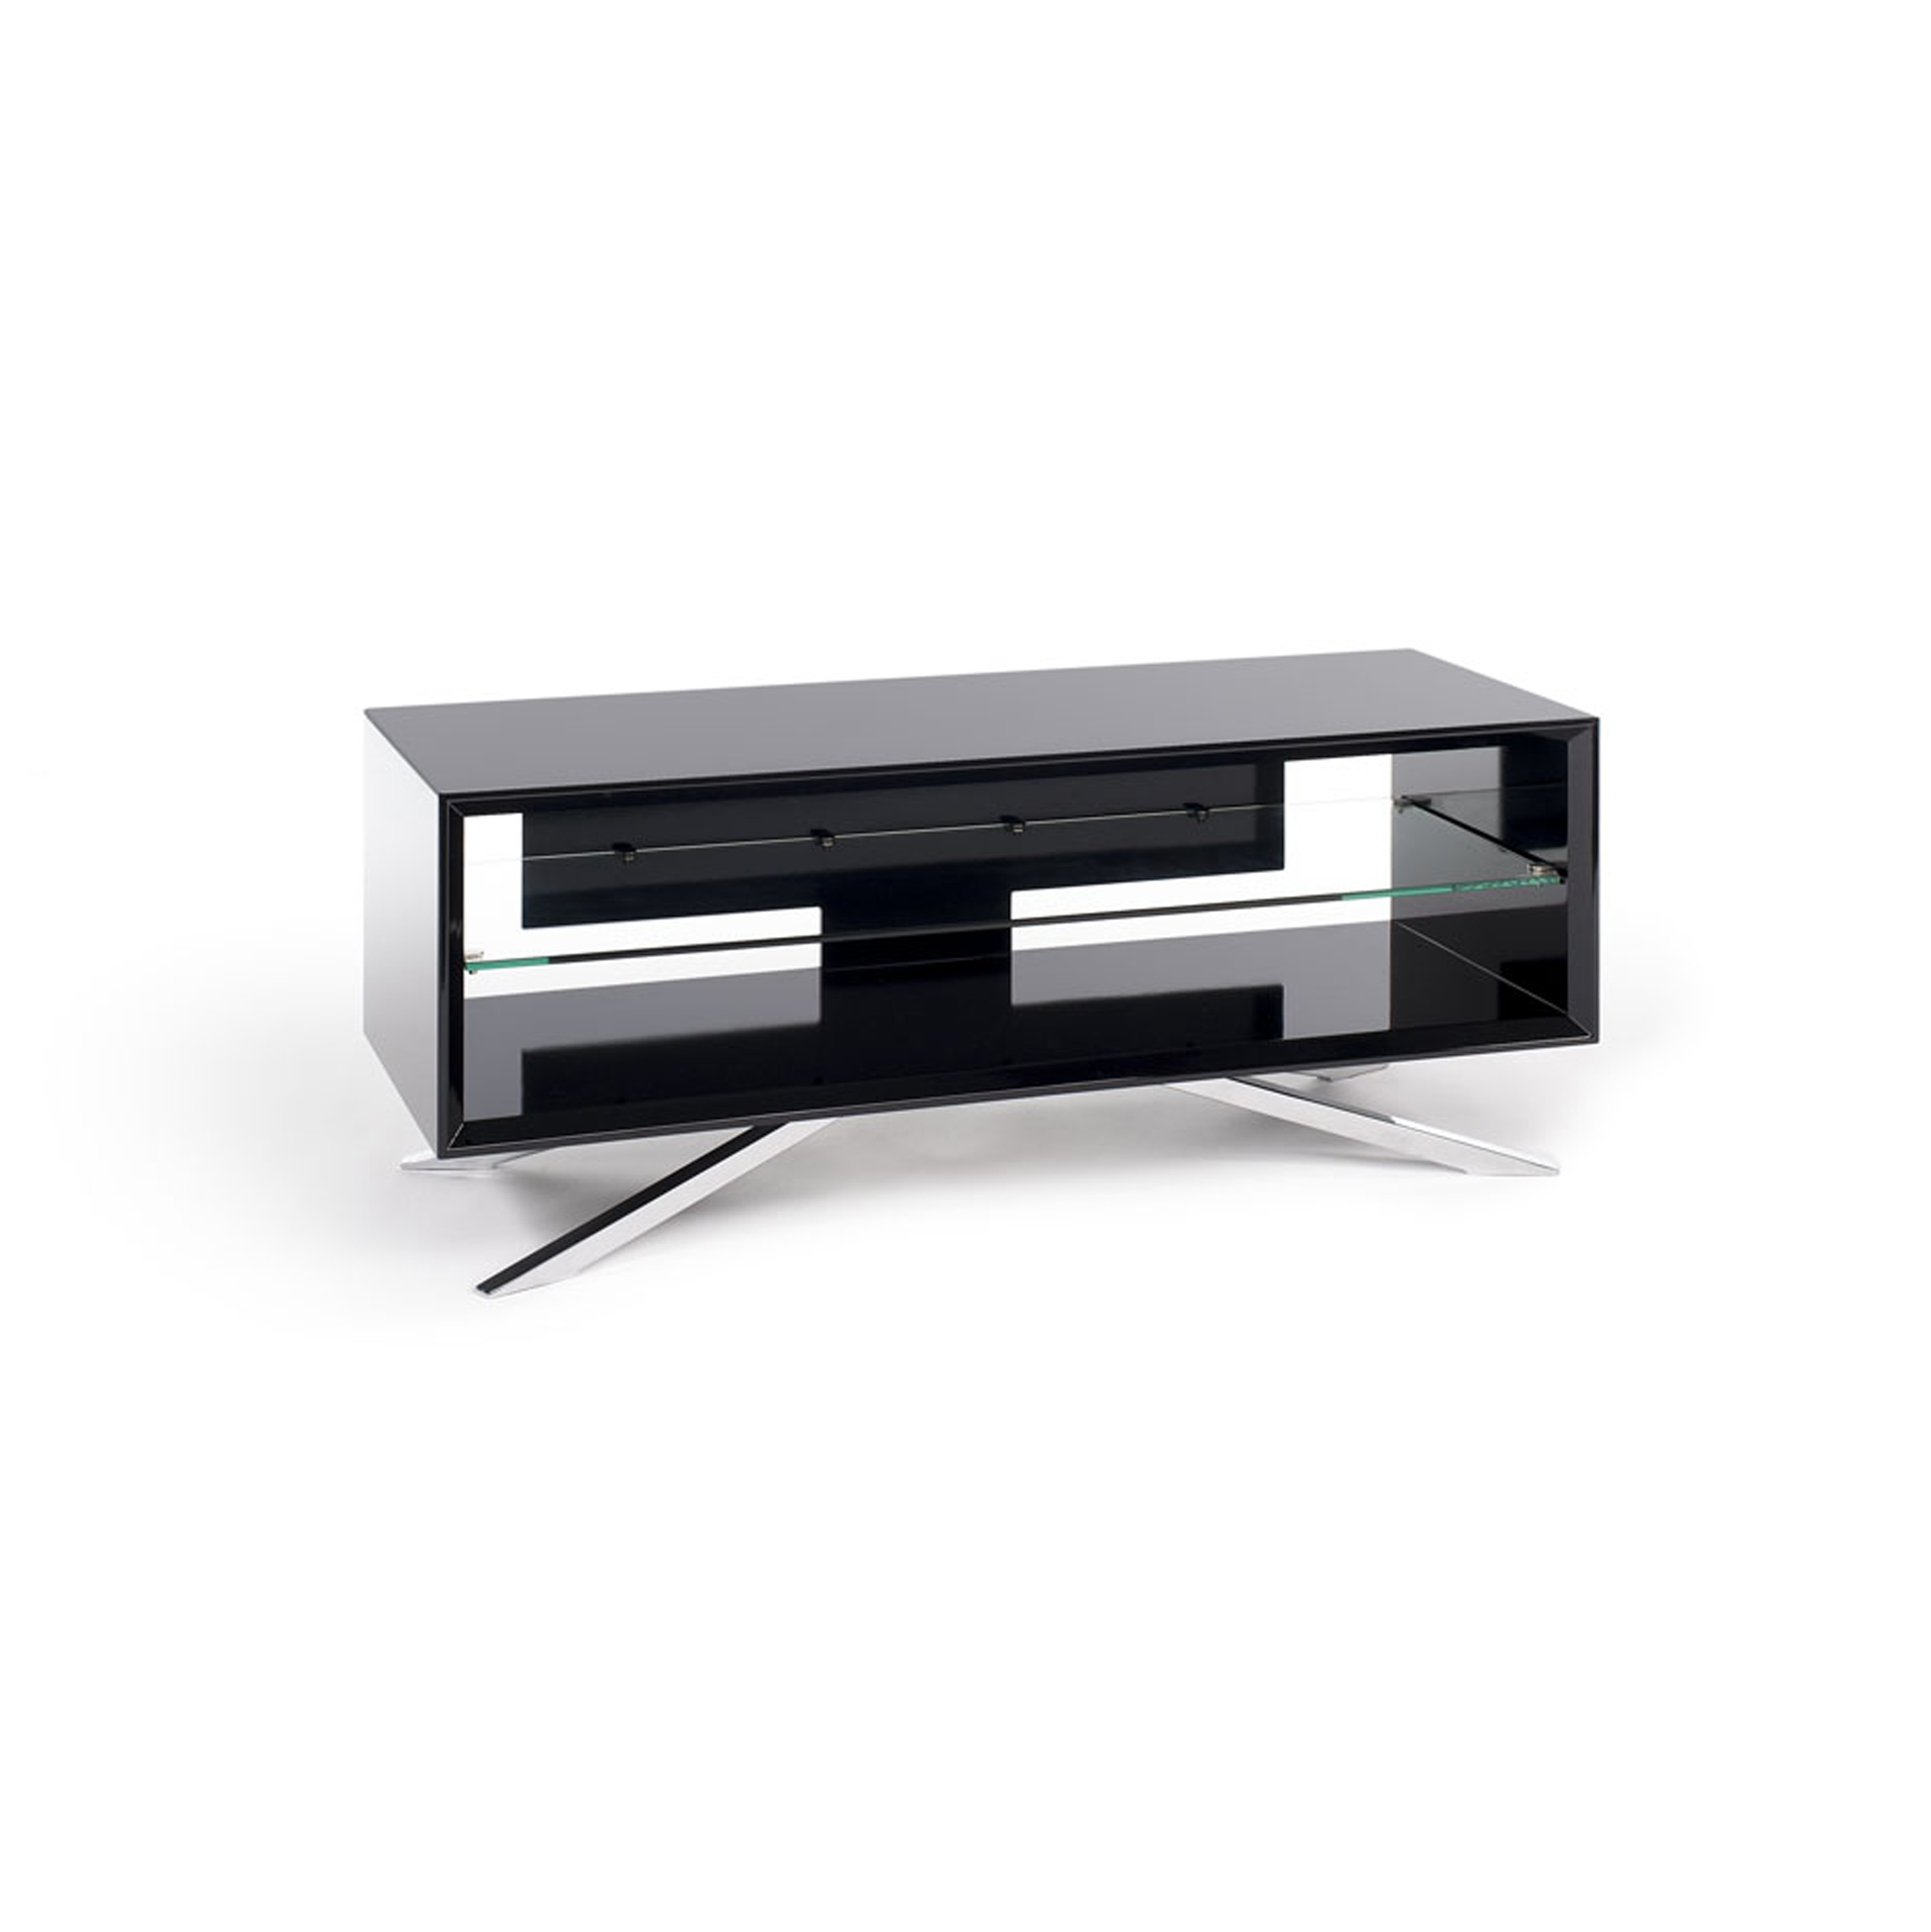 Techlink – Black Tv Stands In Best And Newest Techlink Air Tv Stands (View 12 of 25)